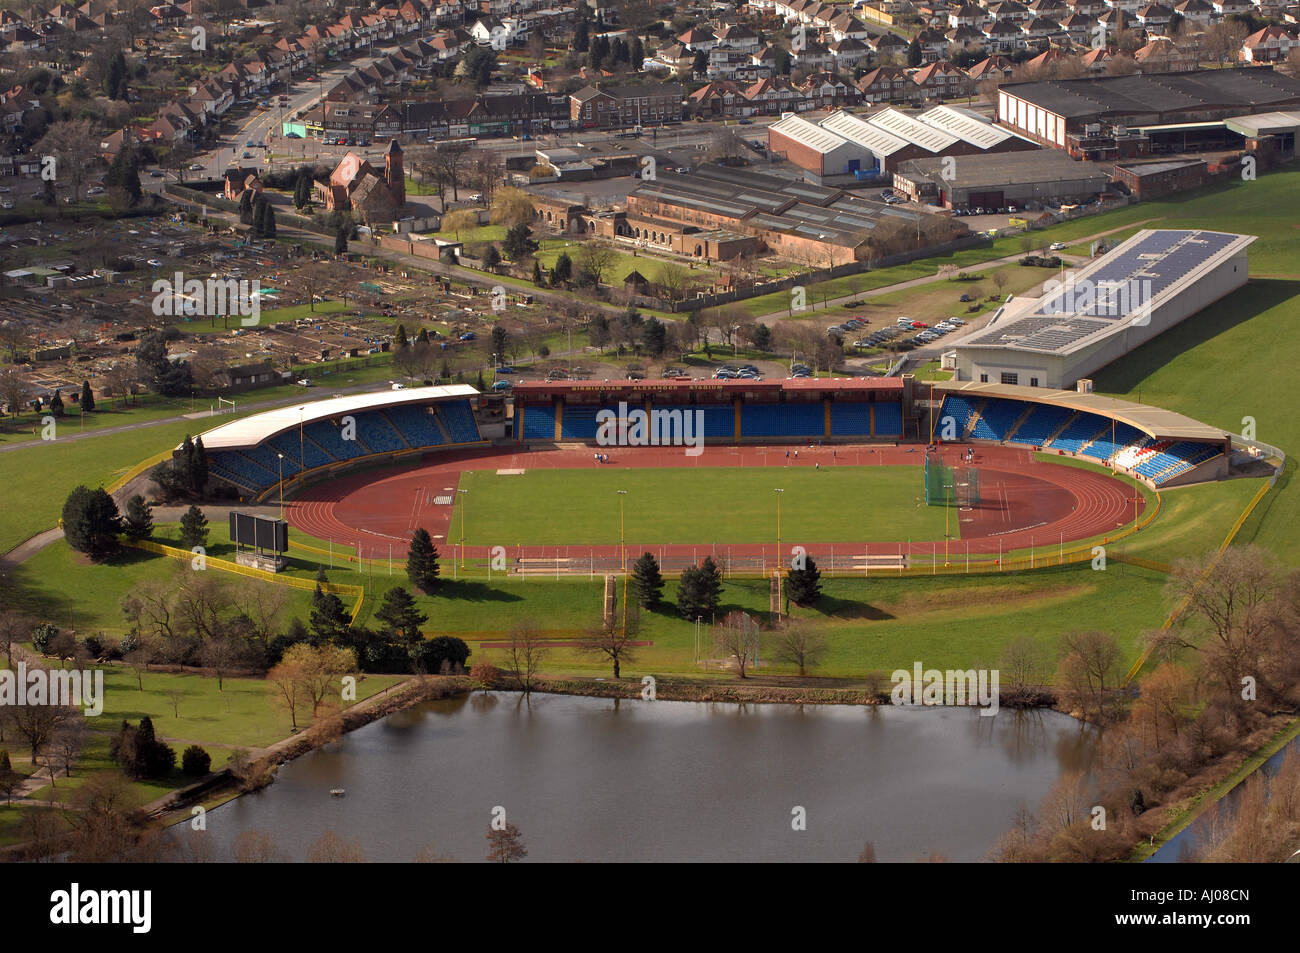 Stade Alexander Perry Barr Birmingham West Midlands, Angleterre Photo Stock